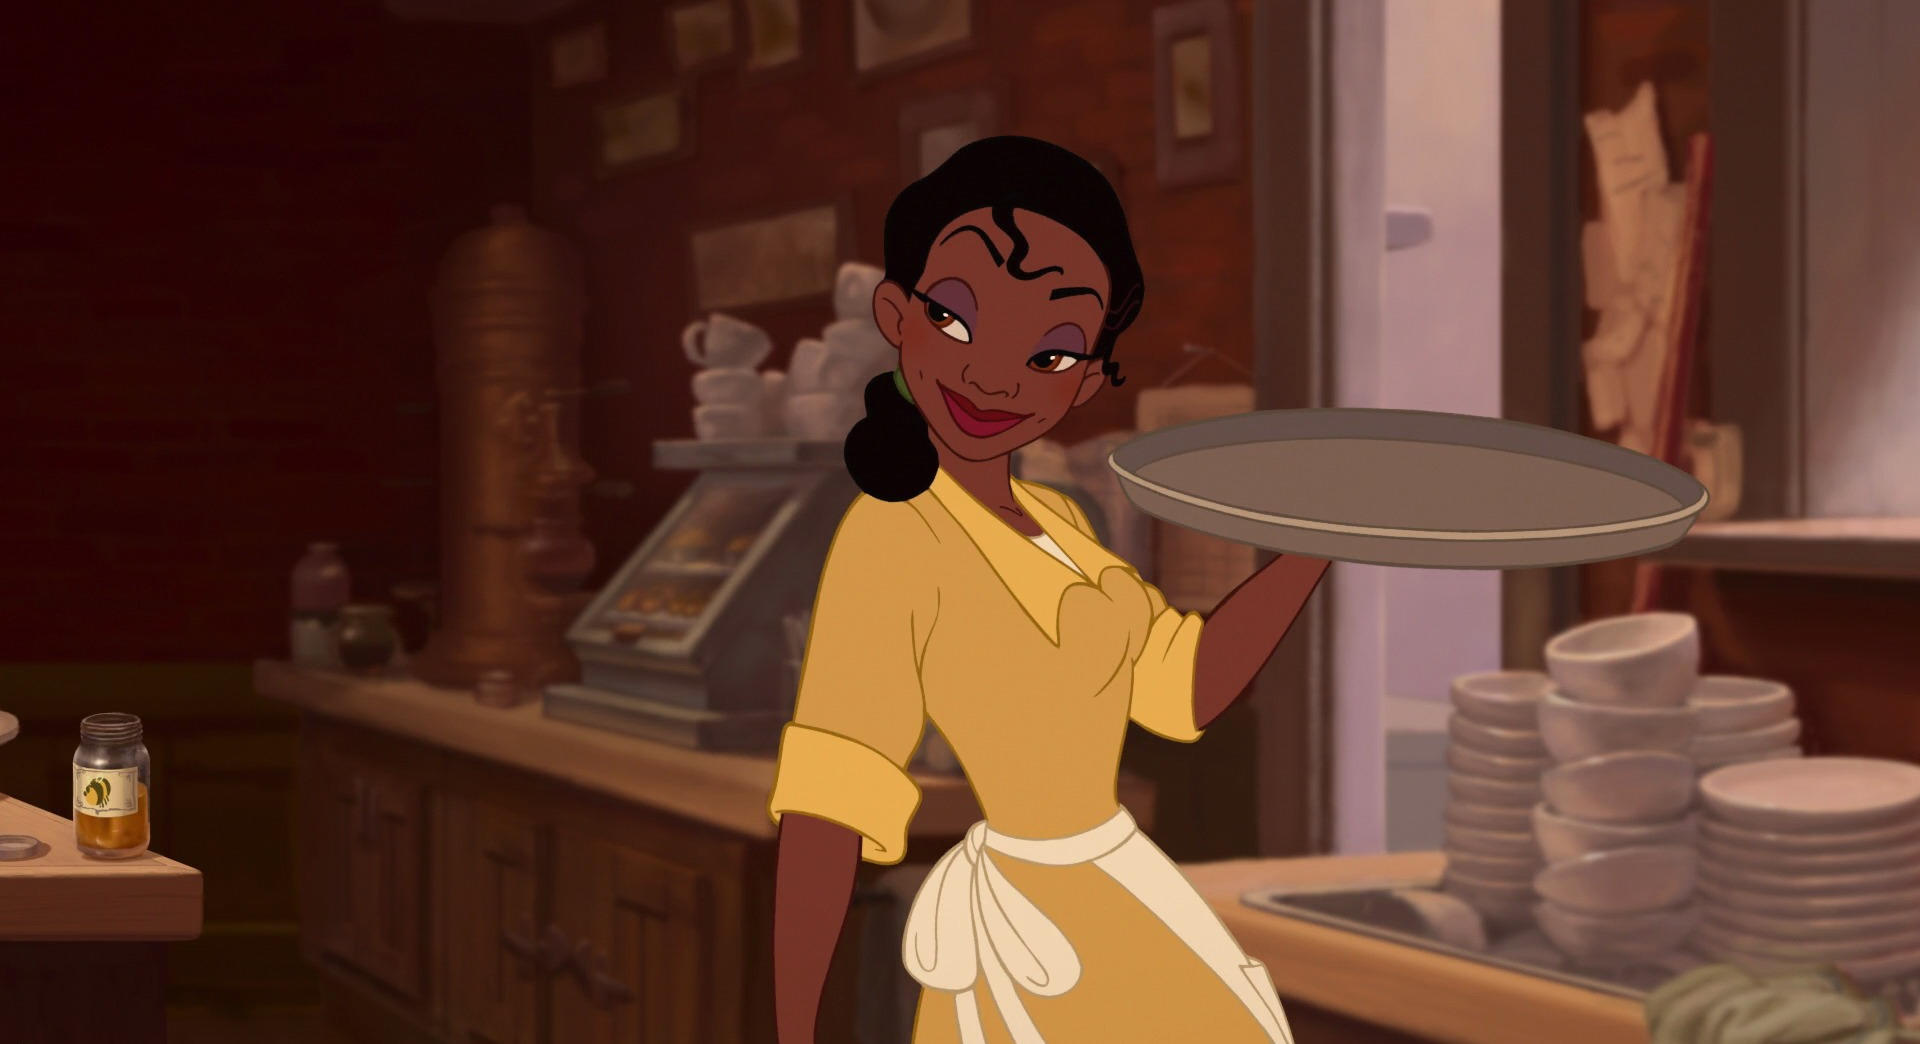 Tiana, working class black woman